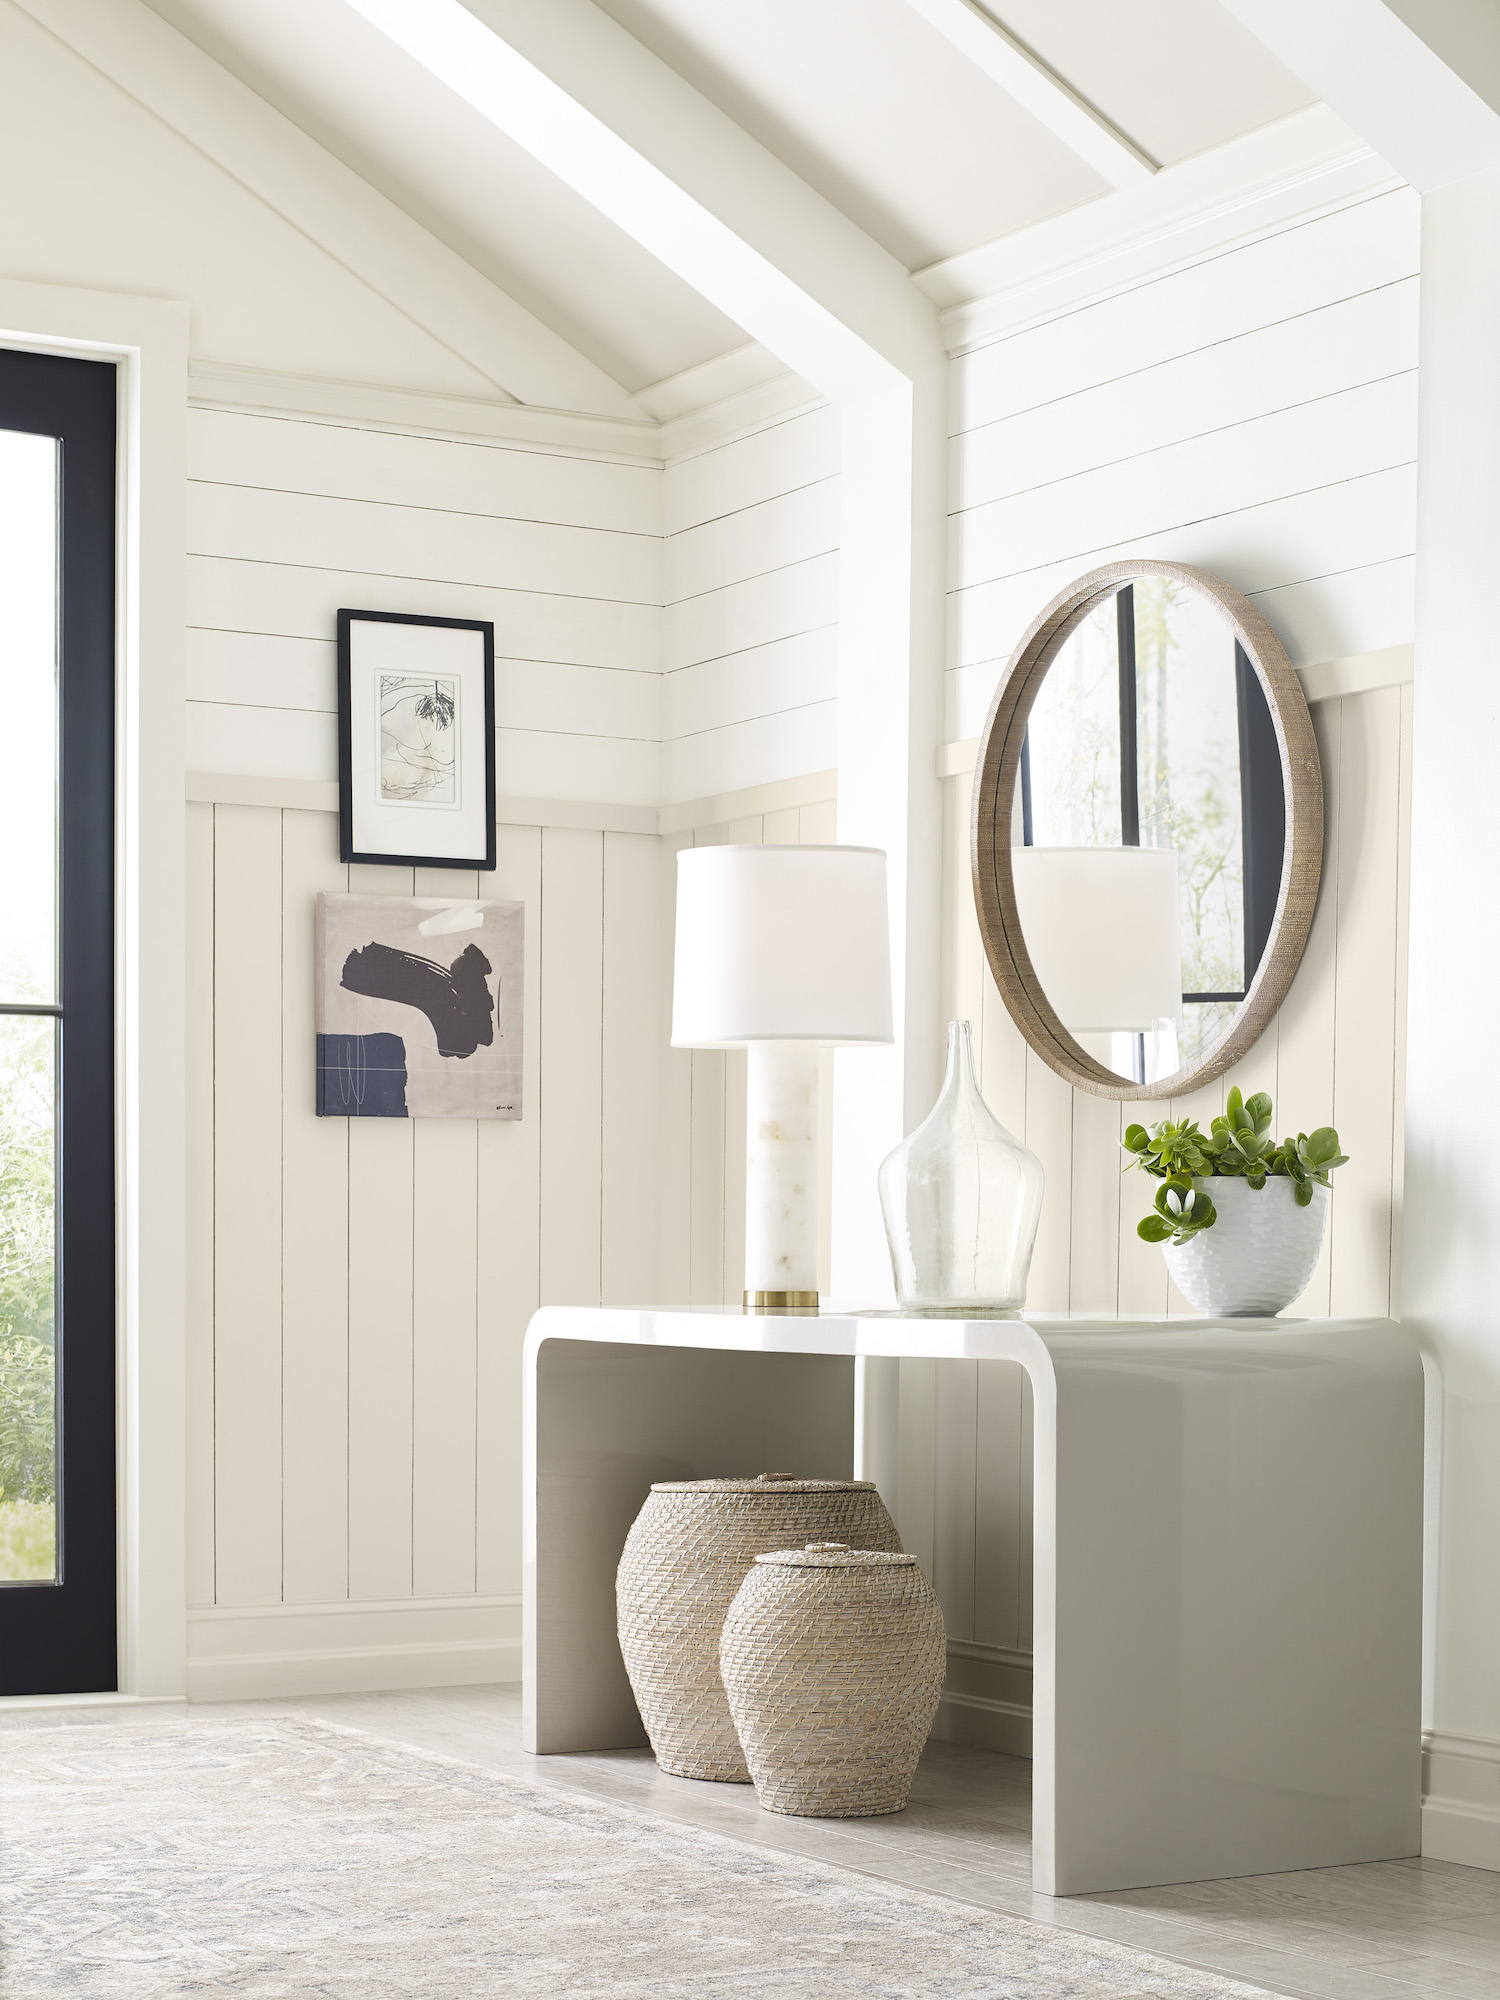 Sherwin Williams nature-inspired color palette in cream-colored entryway